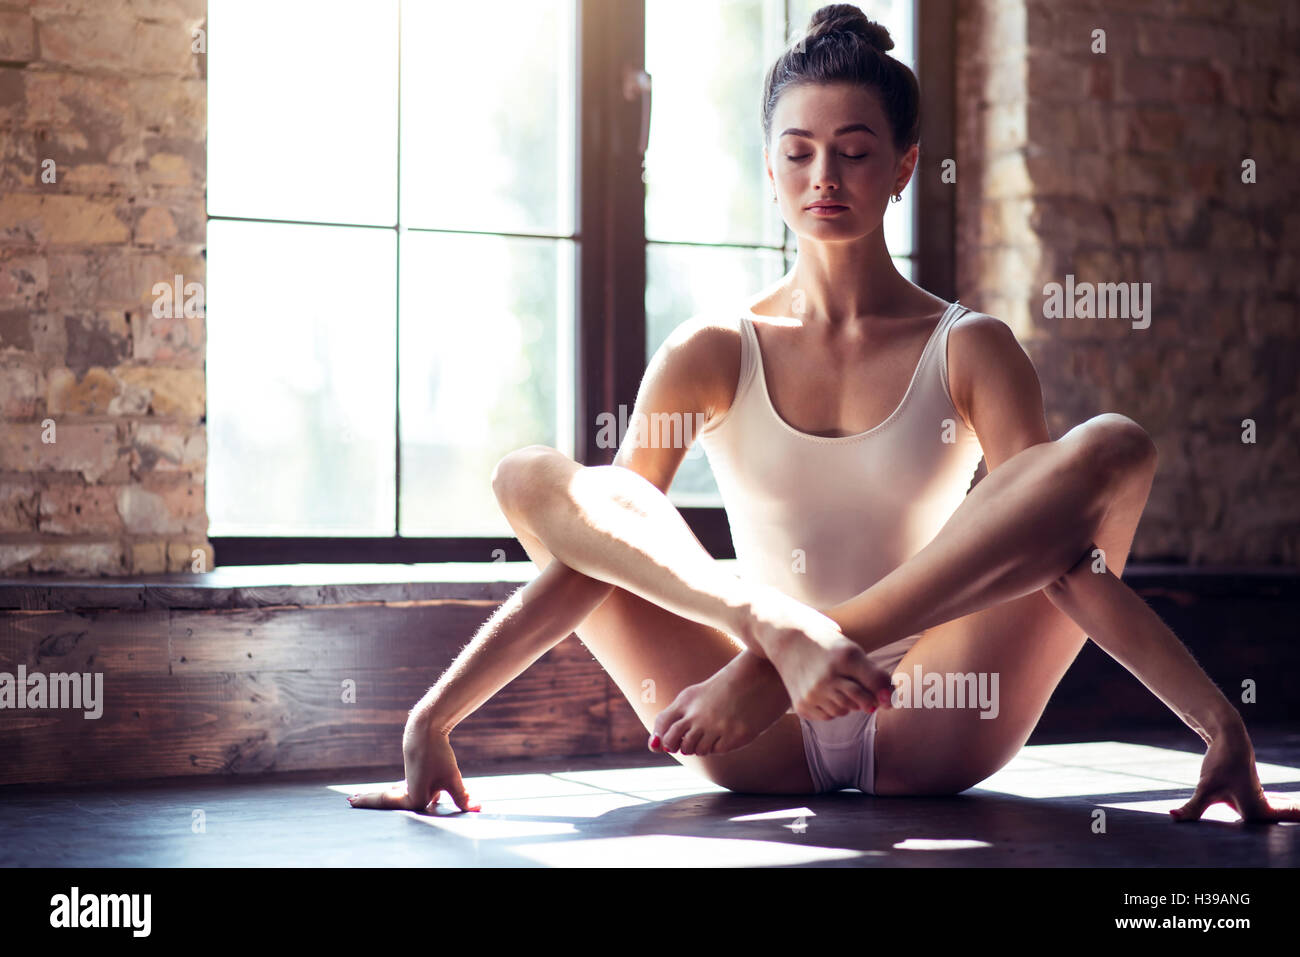 Single Solo Girl Stock Photos & Single Solo Girl Stock ...